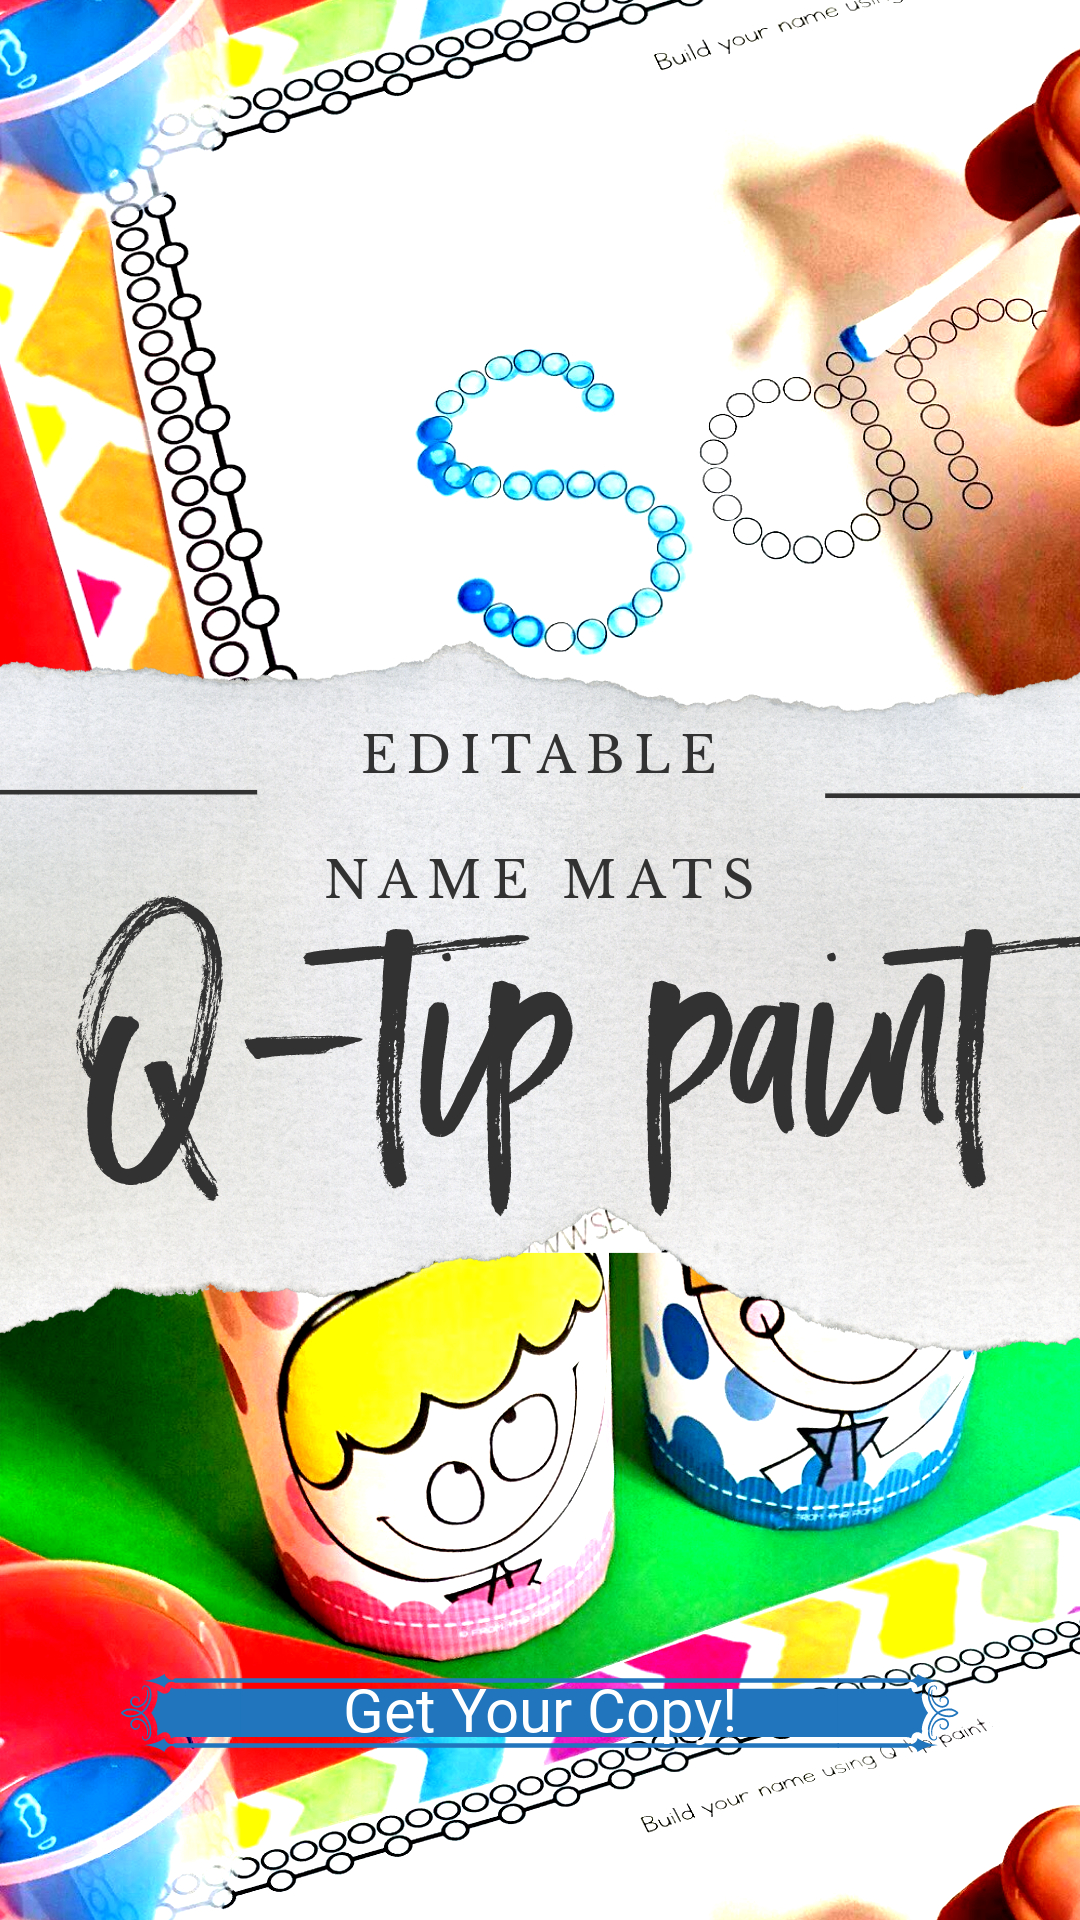 Full-Proof Editable Name Tracing Activities For Preschoolers inside Name Tracing Mats